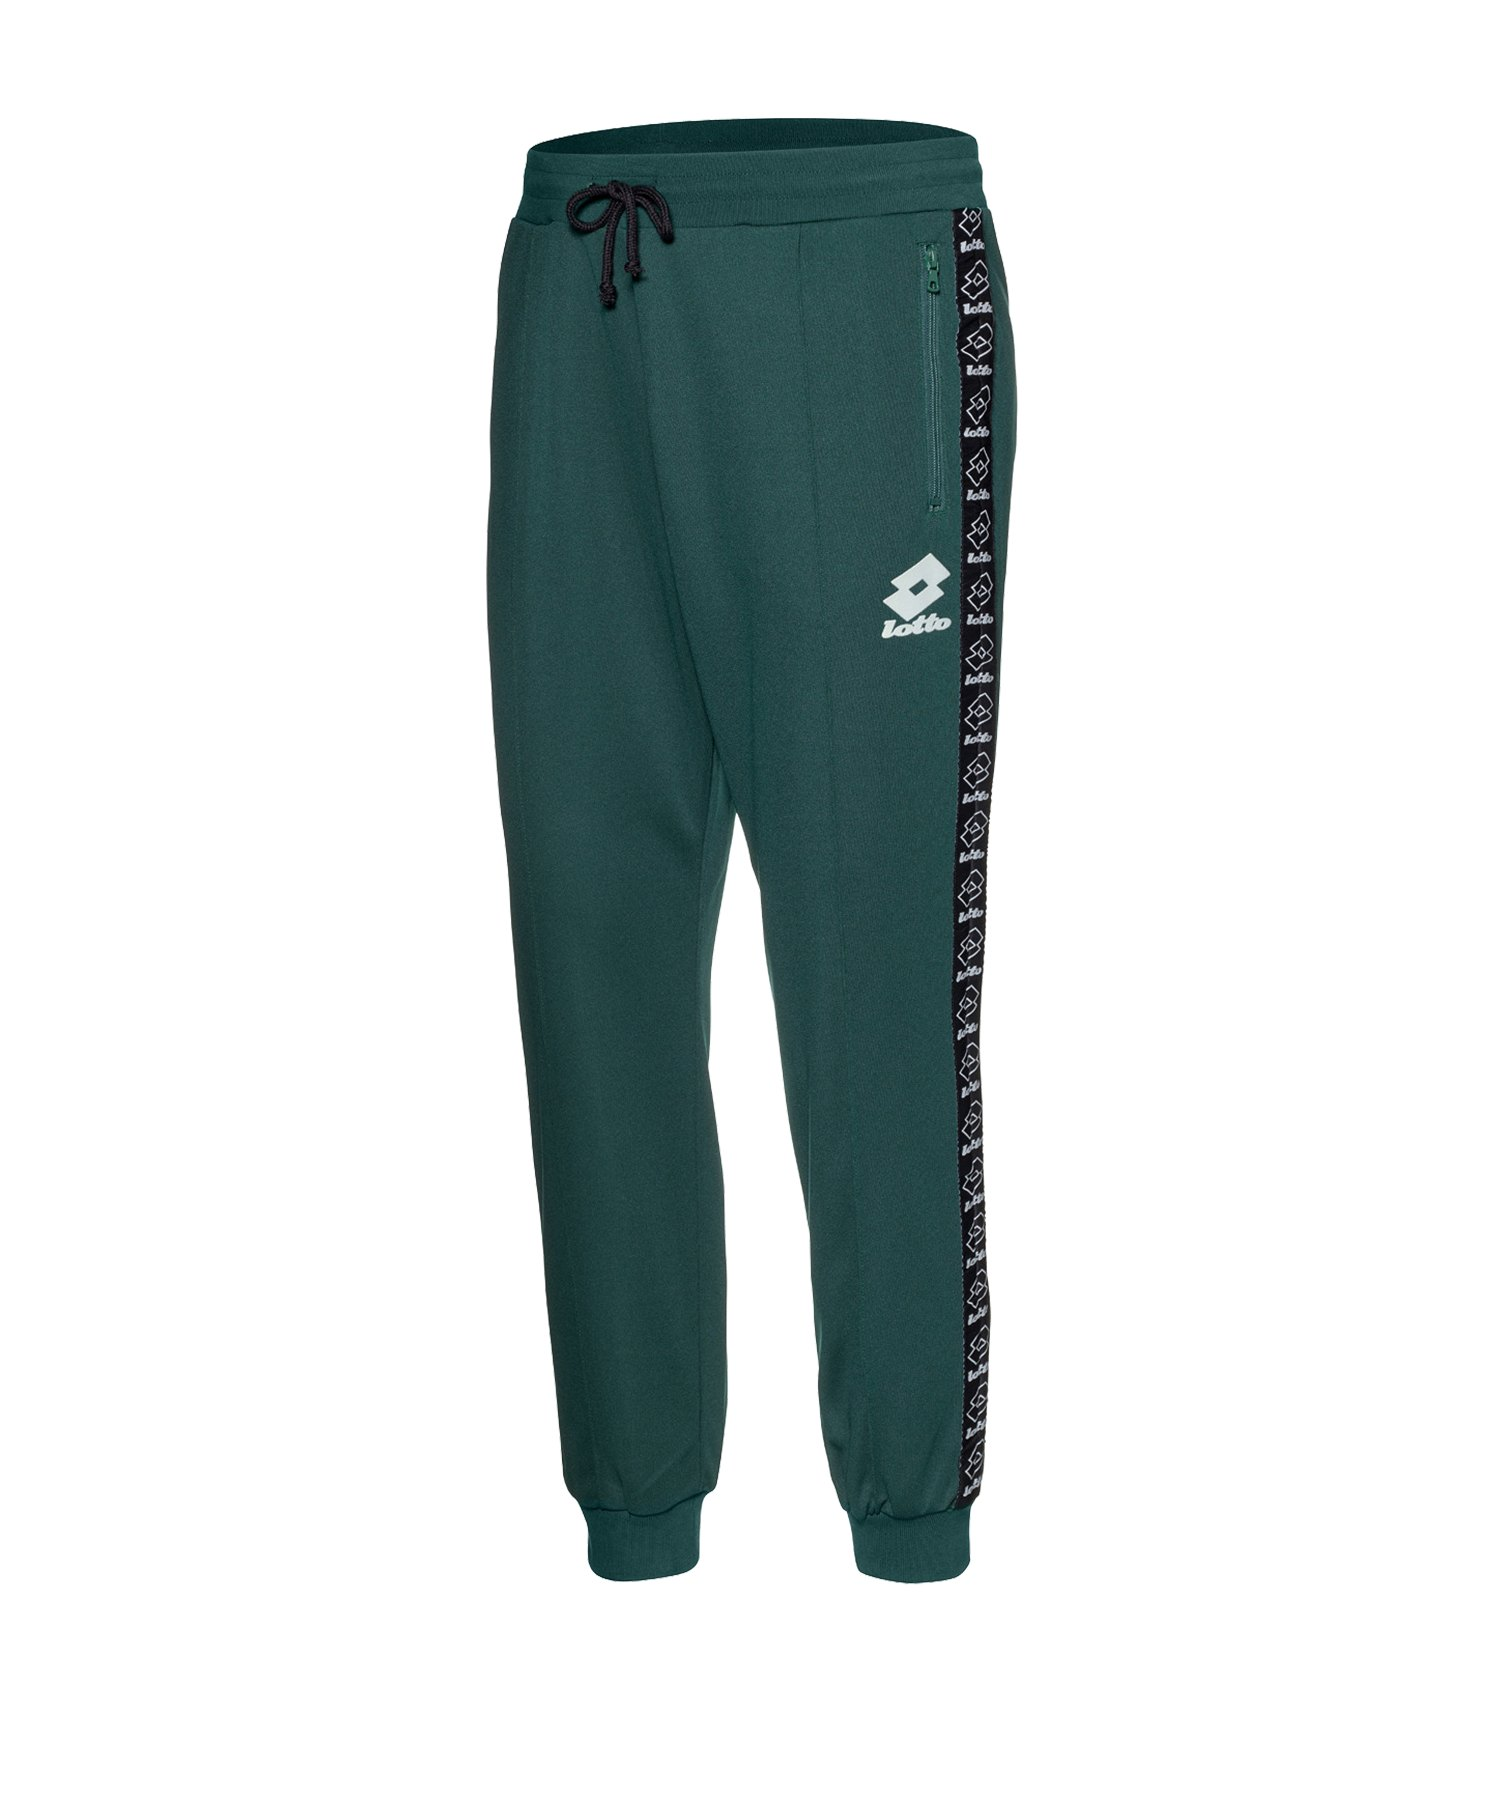 Lotto Athletica II Pants Jogginghose Grün F1EU - gruen